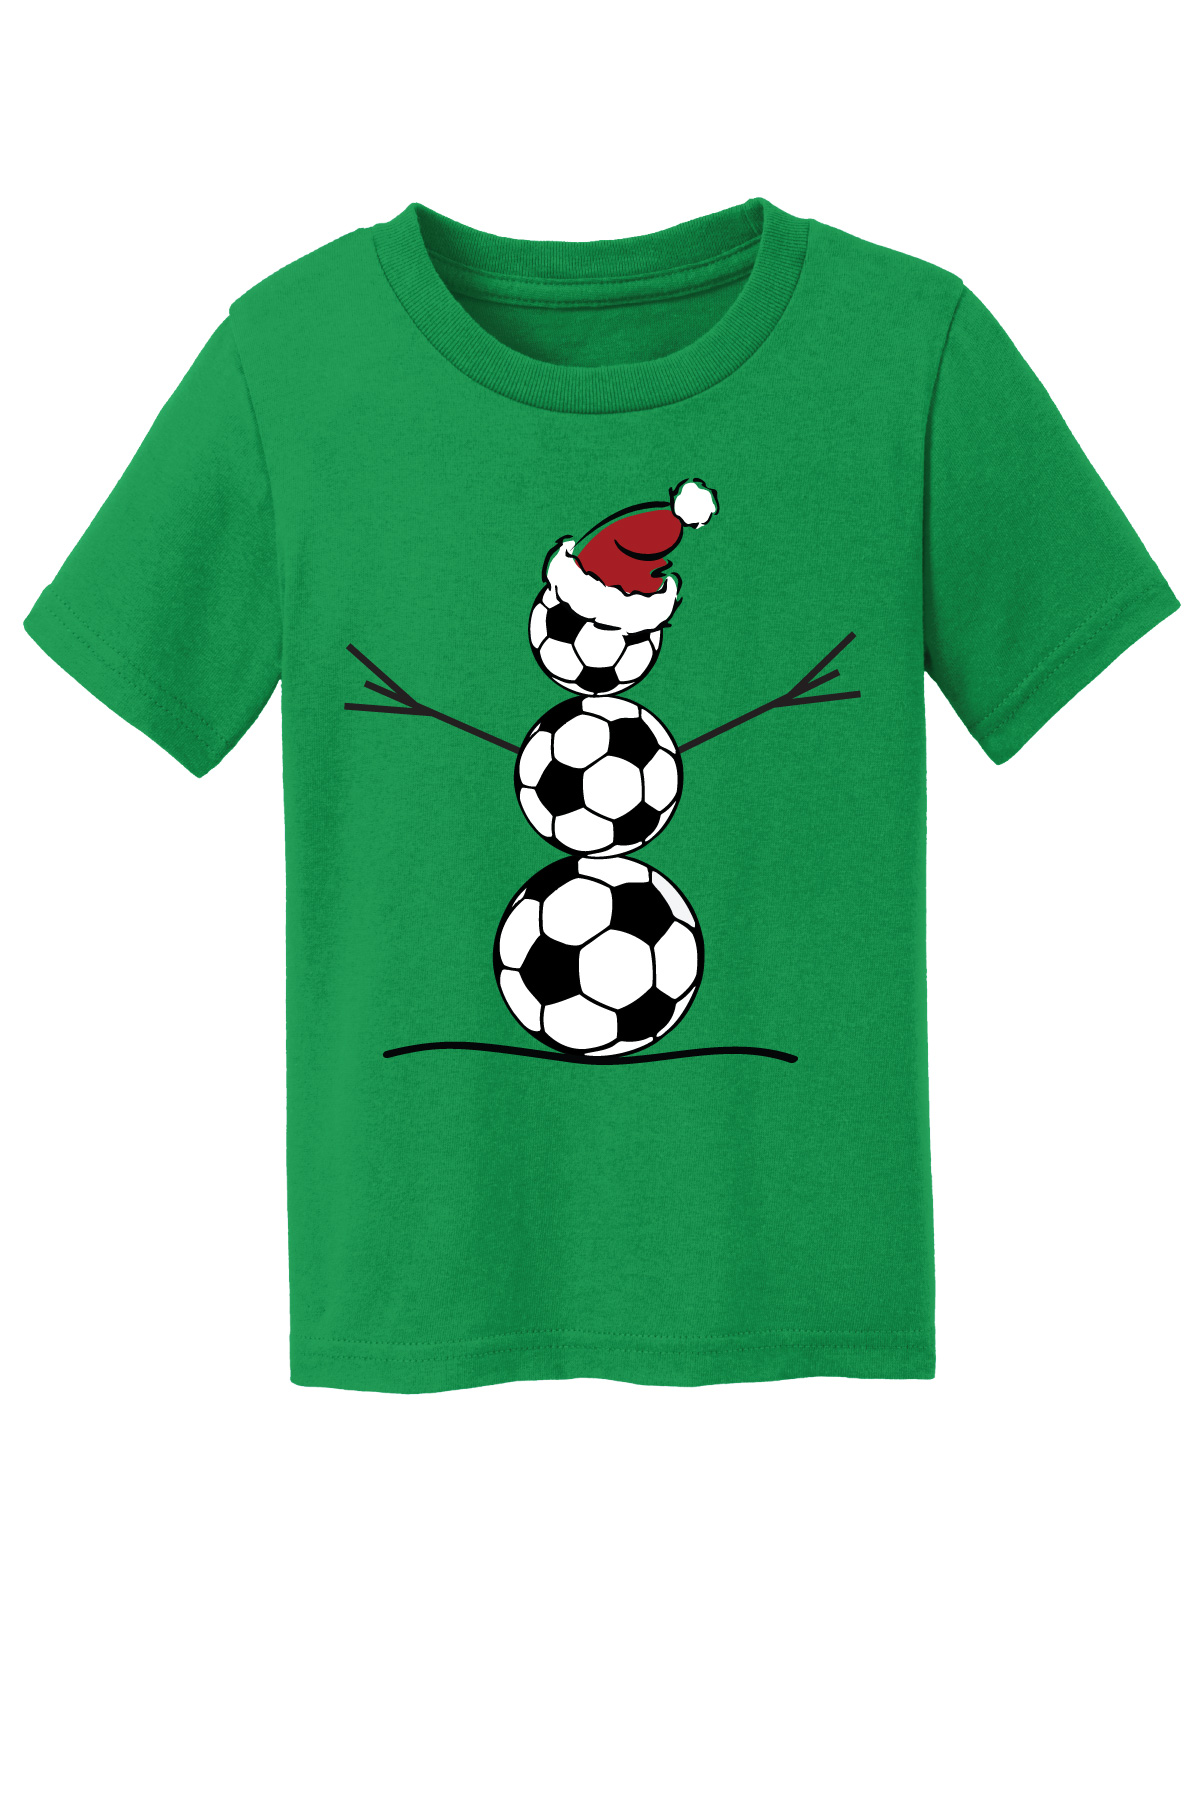 Toddler Soccer Snowman tee by Code Four Athletics